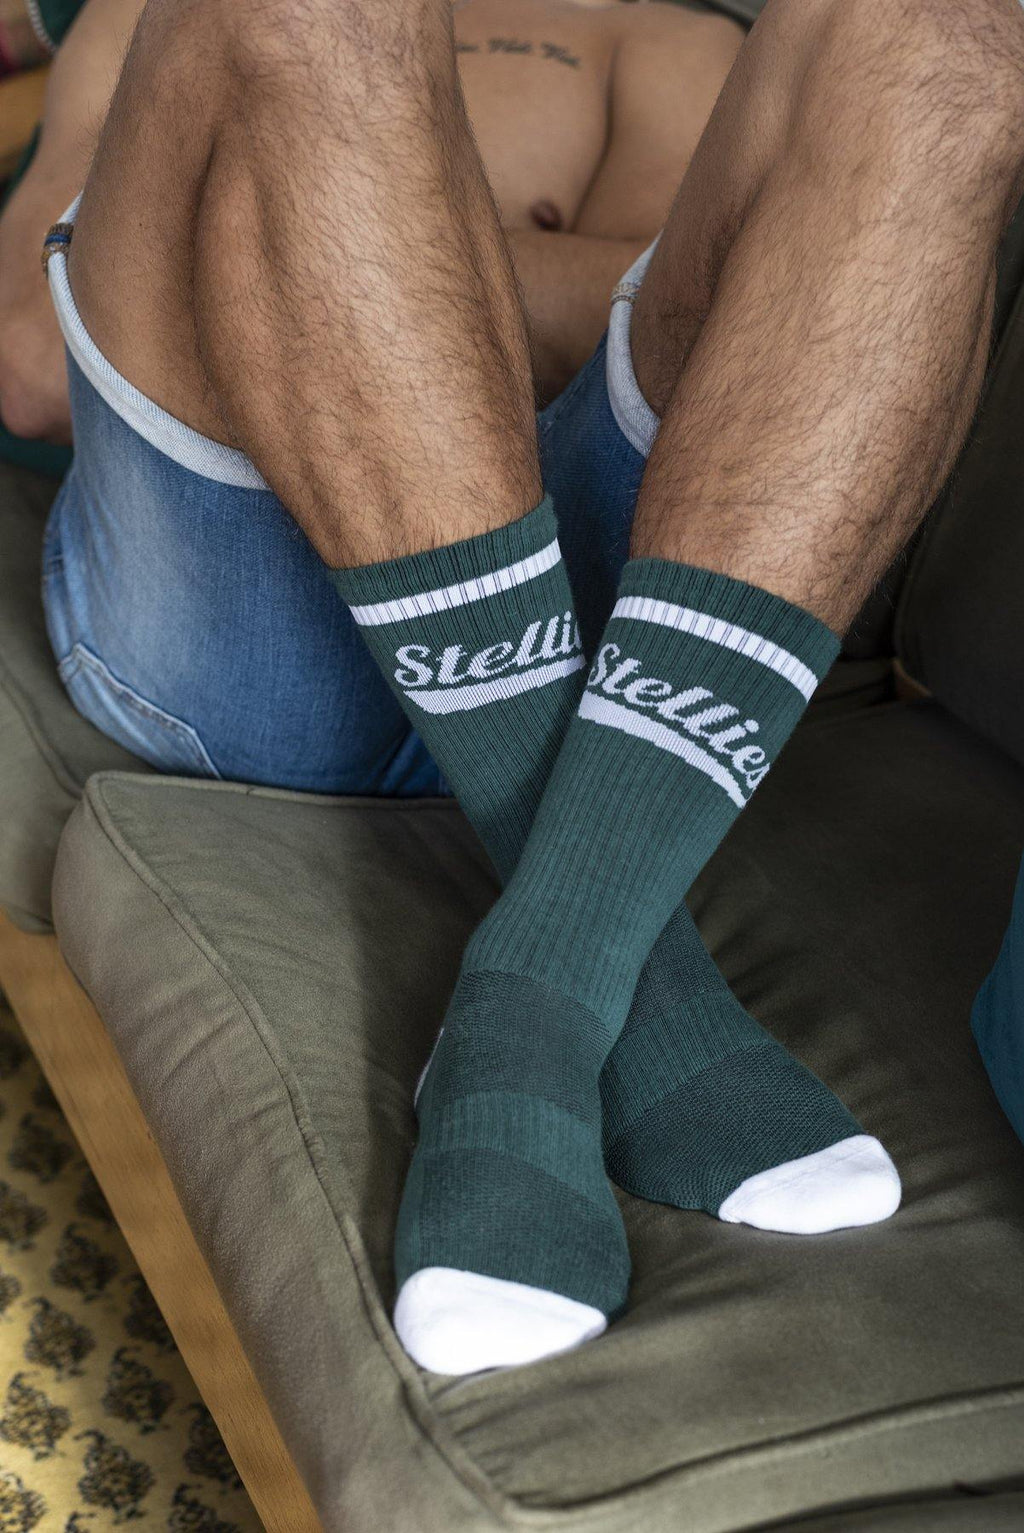 Stellies Socks in Bottle Green